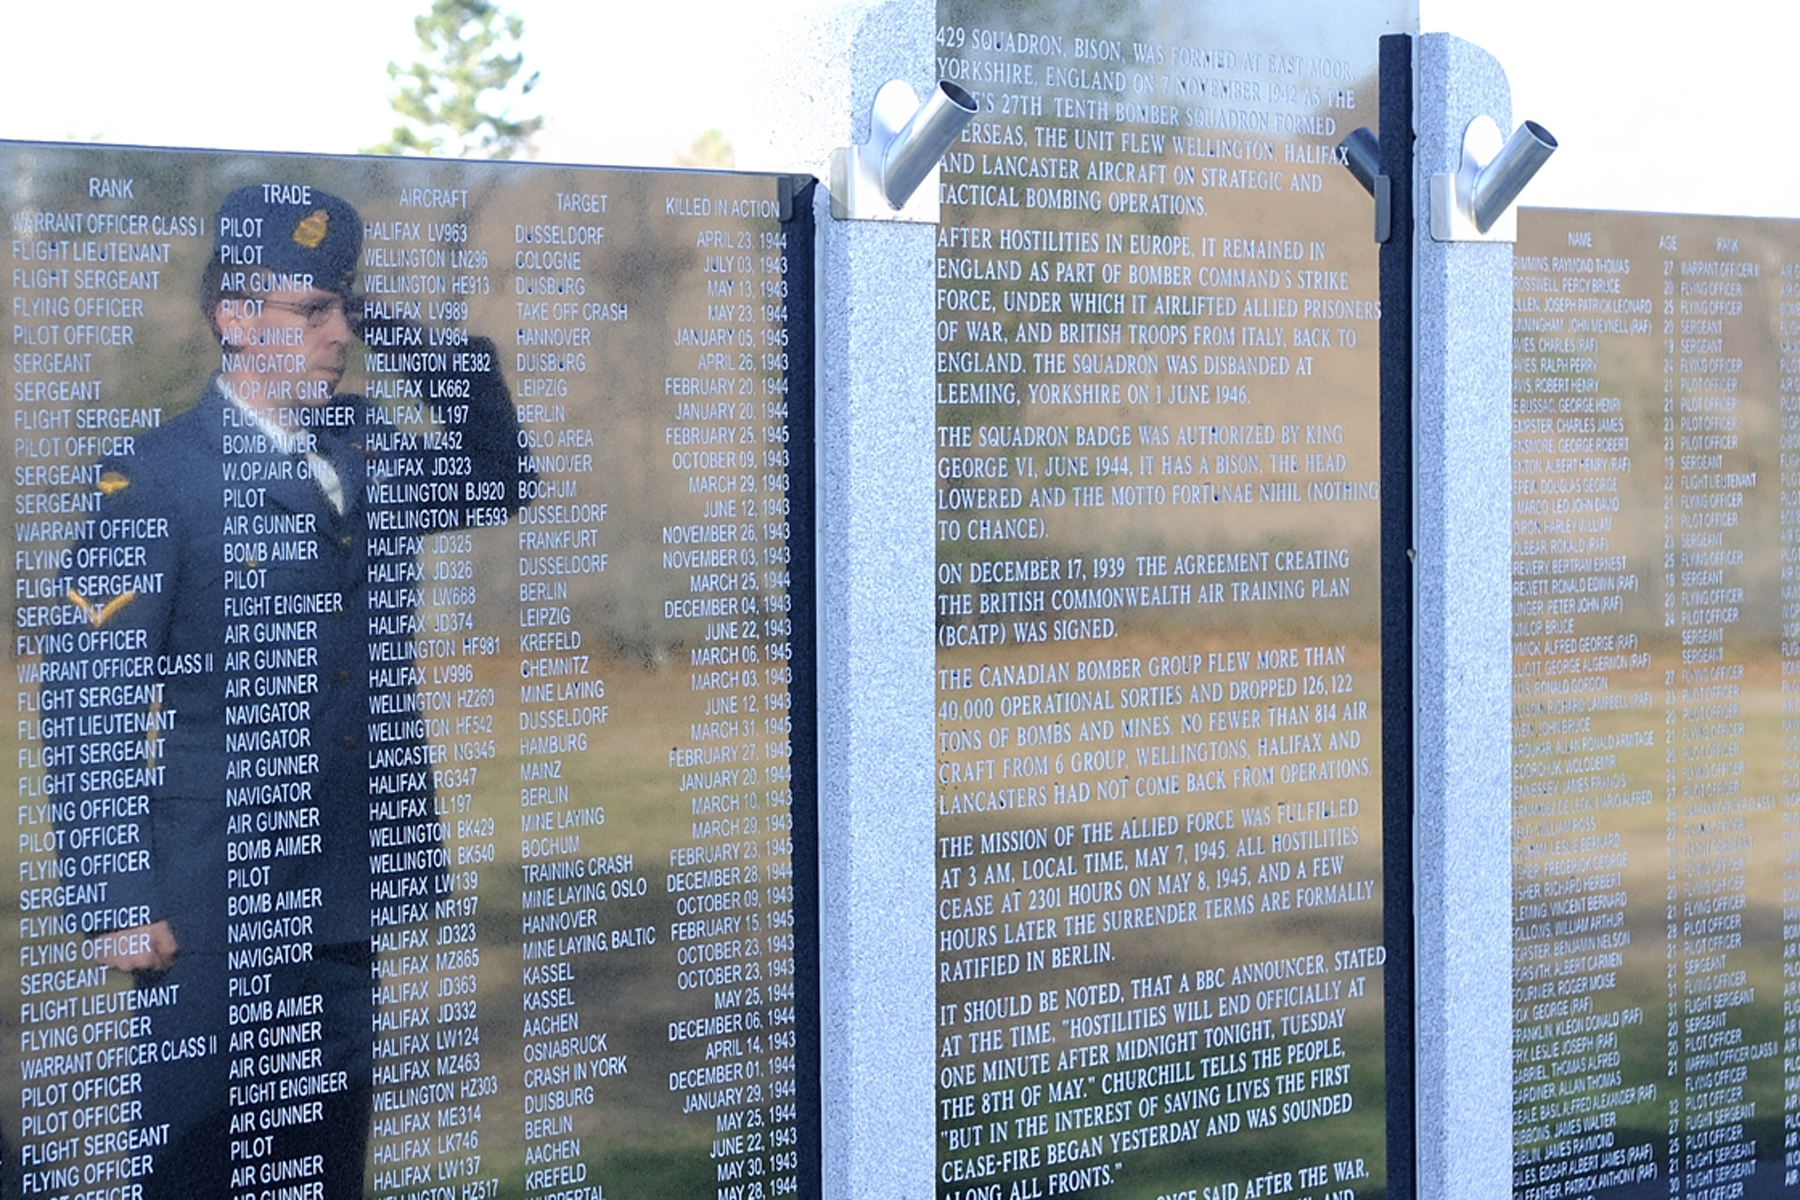 During the Middleton, Nova Scotia, Remembrance Day ceremony on November 11, 2014, a member of the Royal Canadian Air Force pays his respects at the monument bearing the names of personnel who lost their lives in flight training at Greenwood, Nova Scotia, during the Second World War. PHOTO: Corporal Gerald Cormier